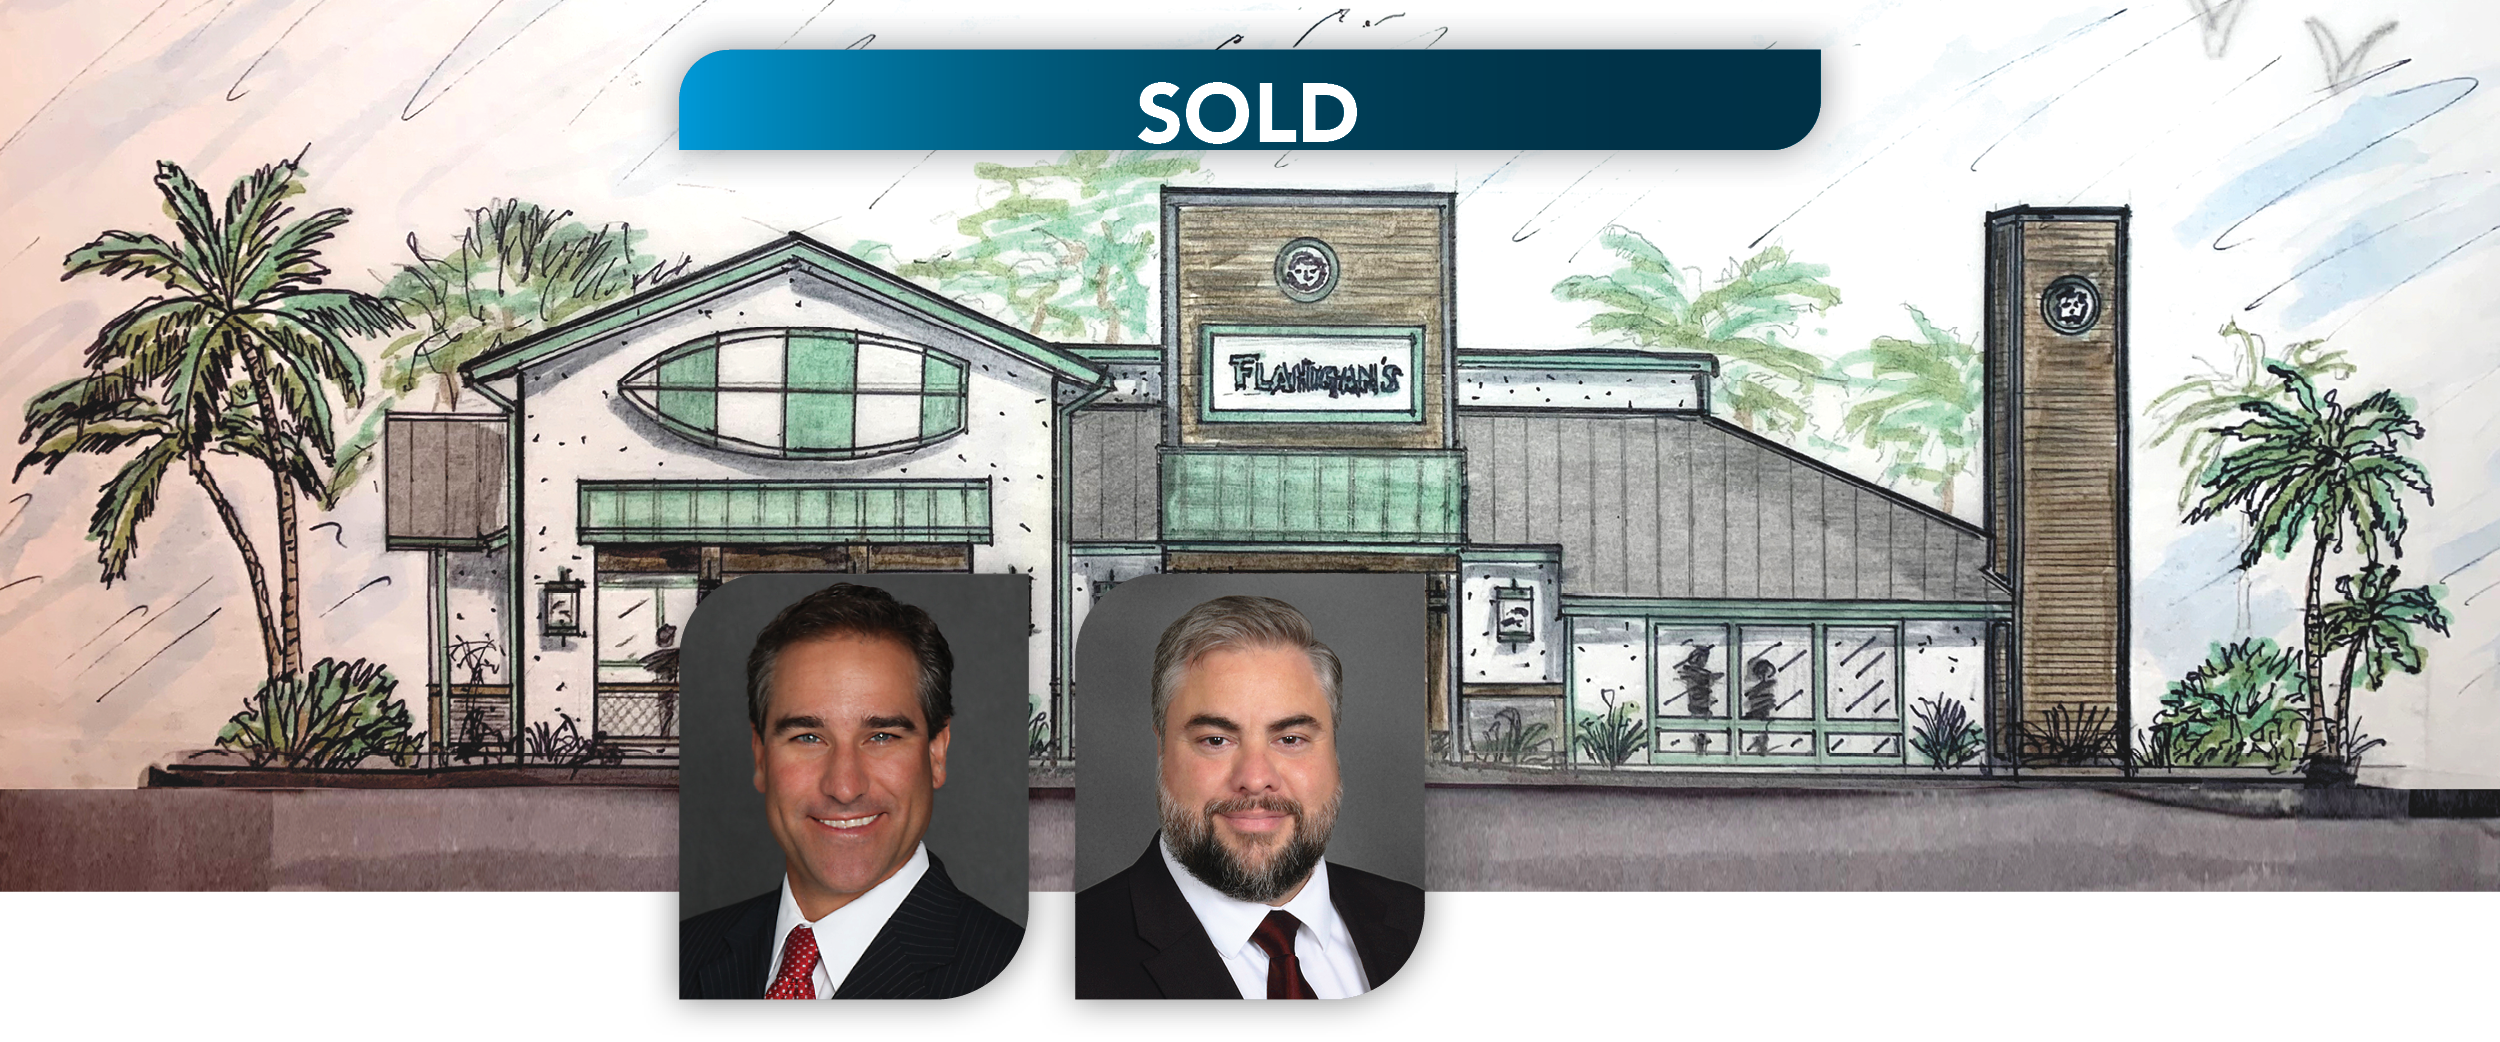 Lee & Associates South Florida Announces the Sale of Flanigan's New Sunrise Location on W Sunrise Blvd for $4.8MM